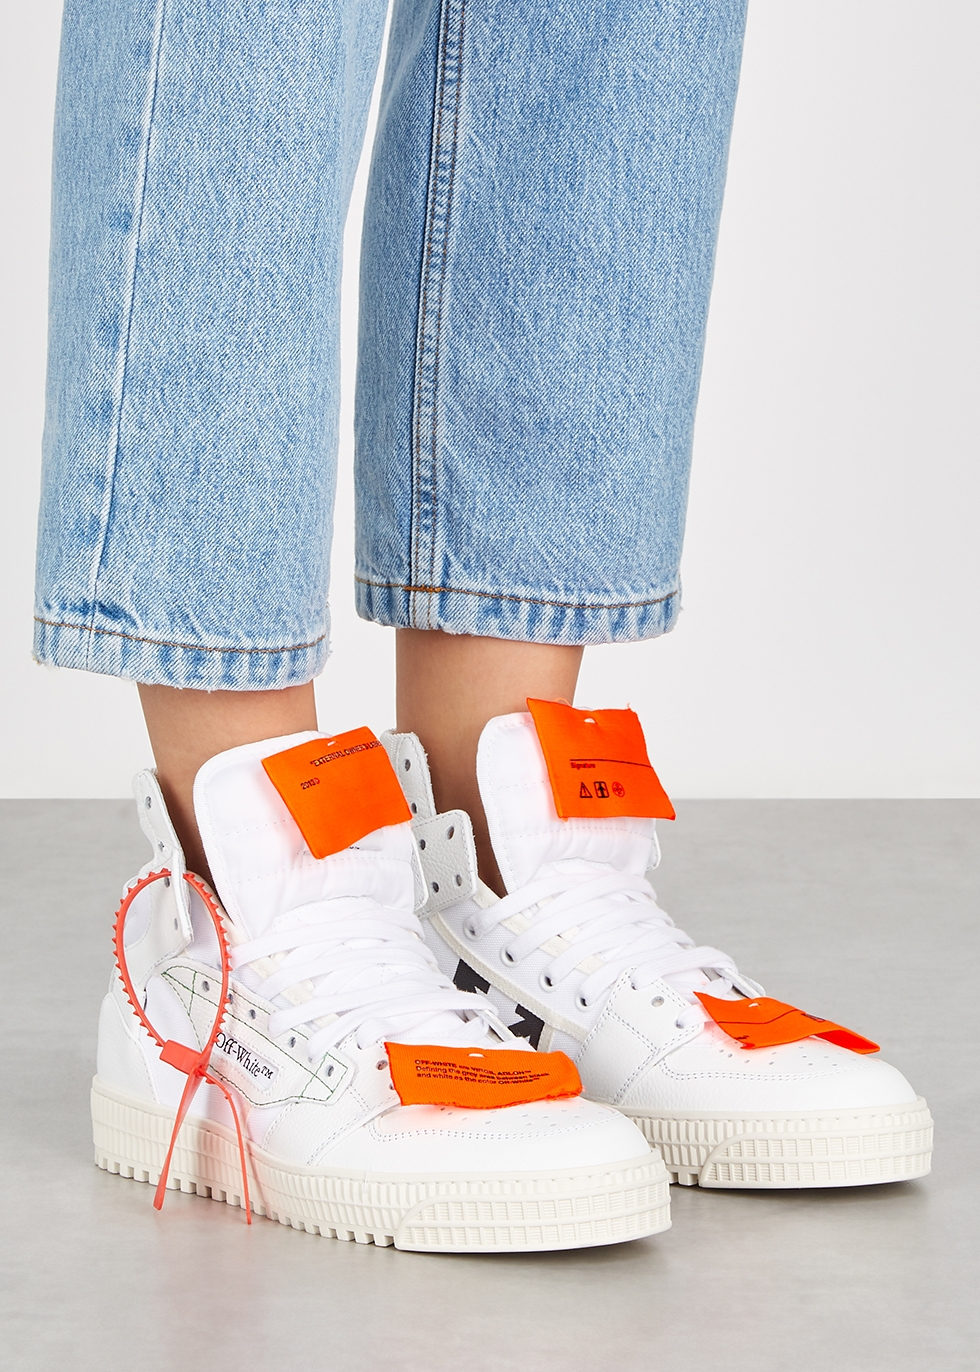 Off-Court 3.0 white leather hi-top